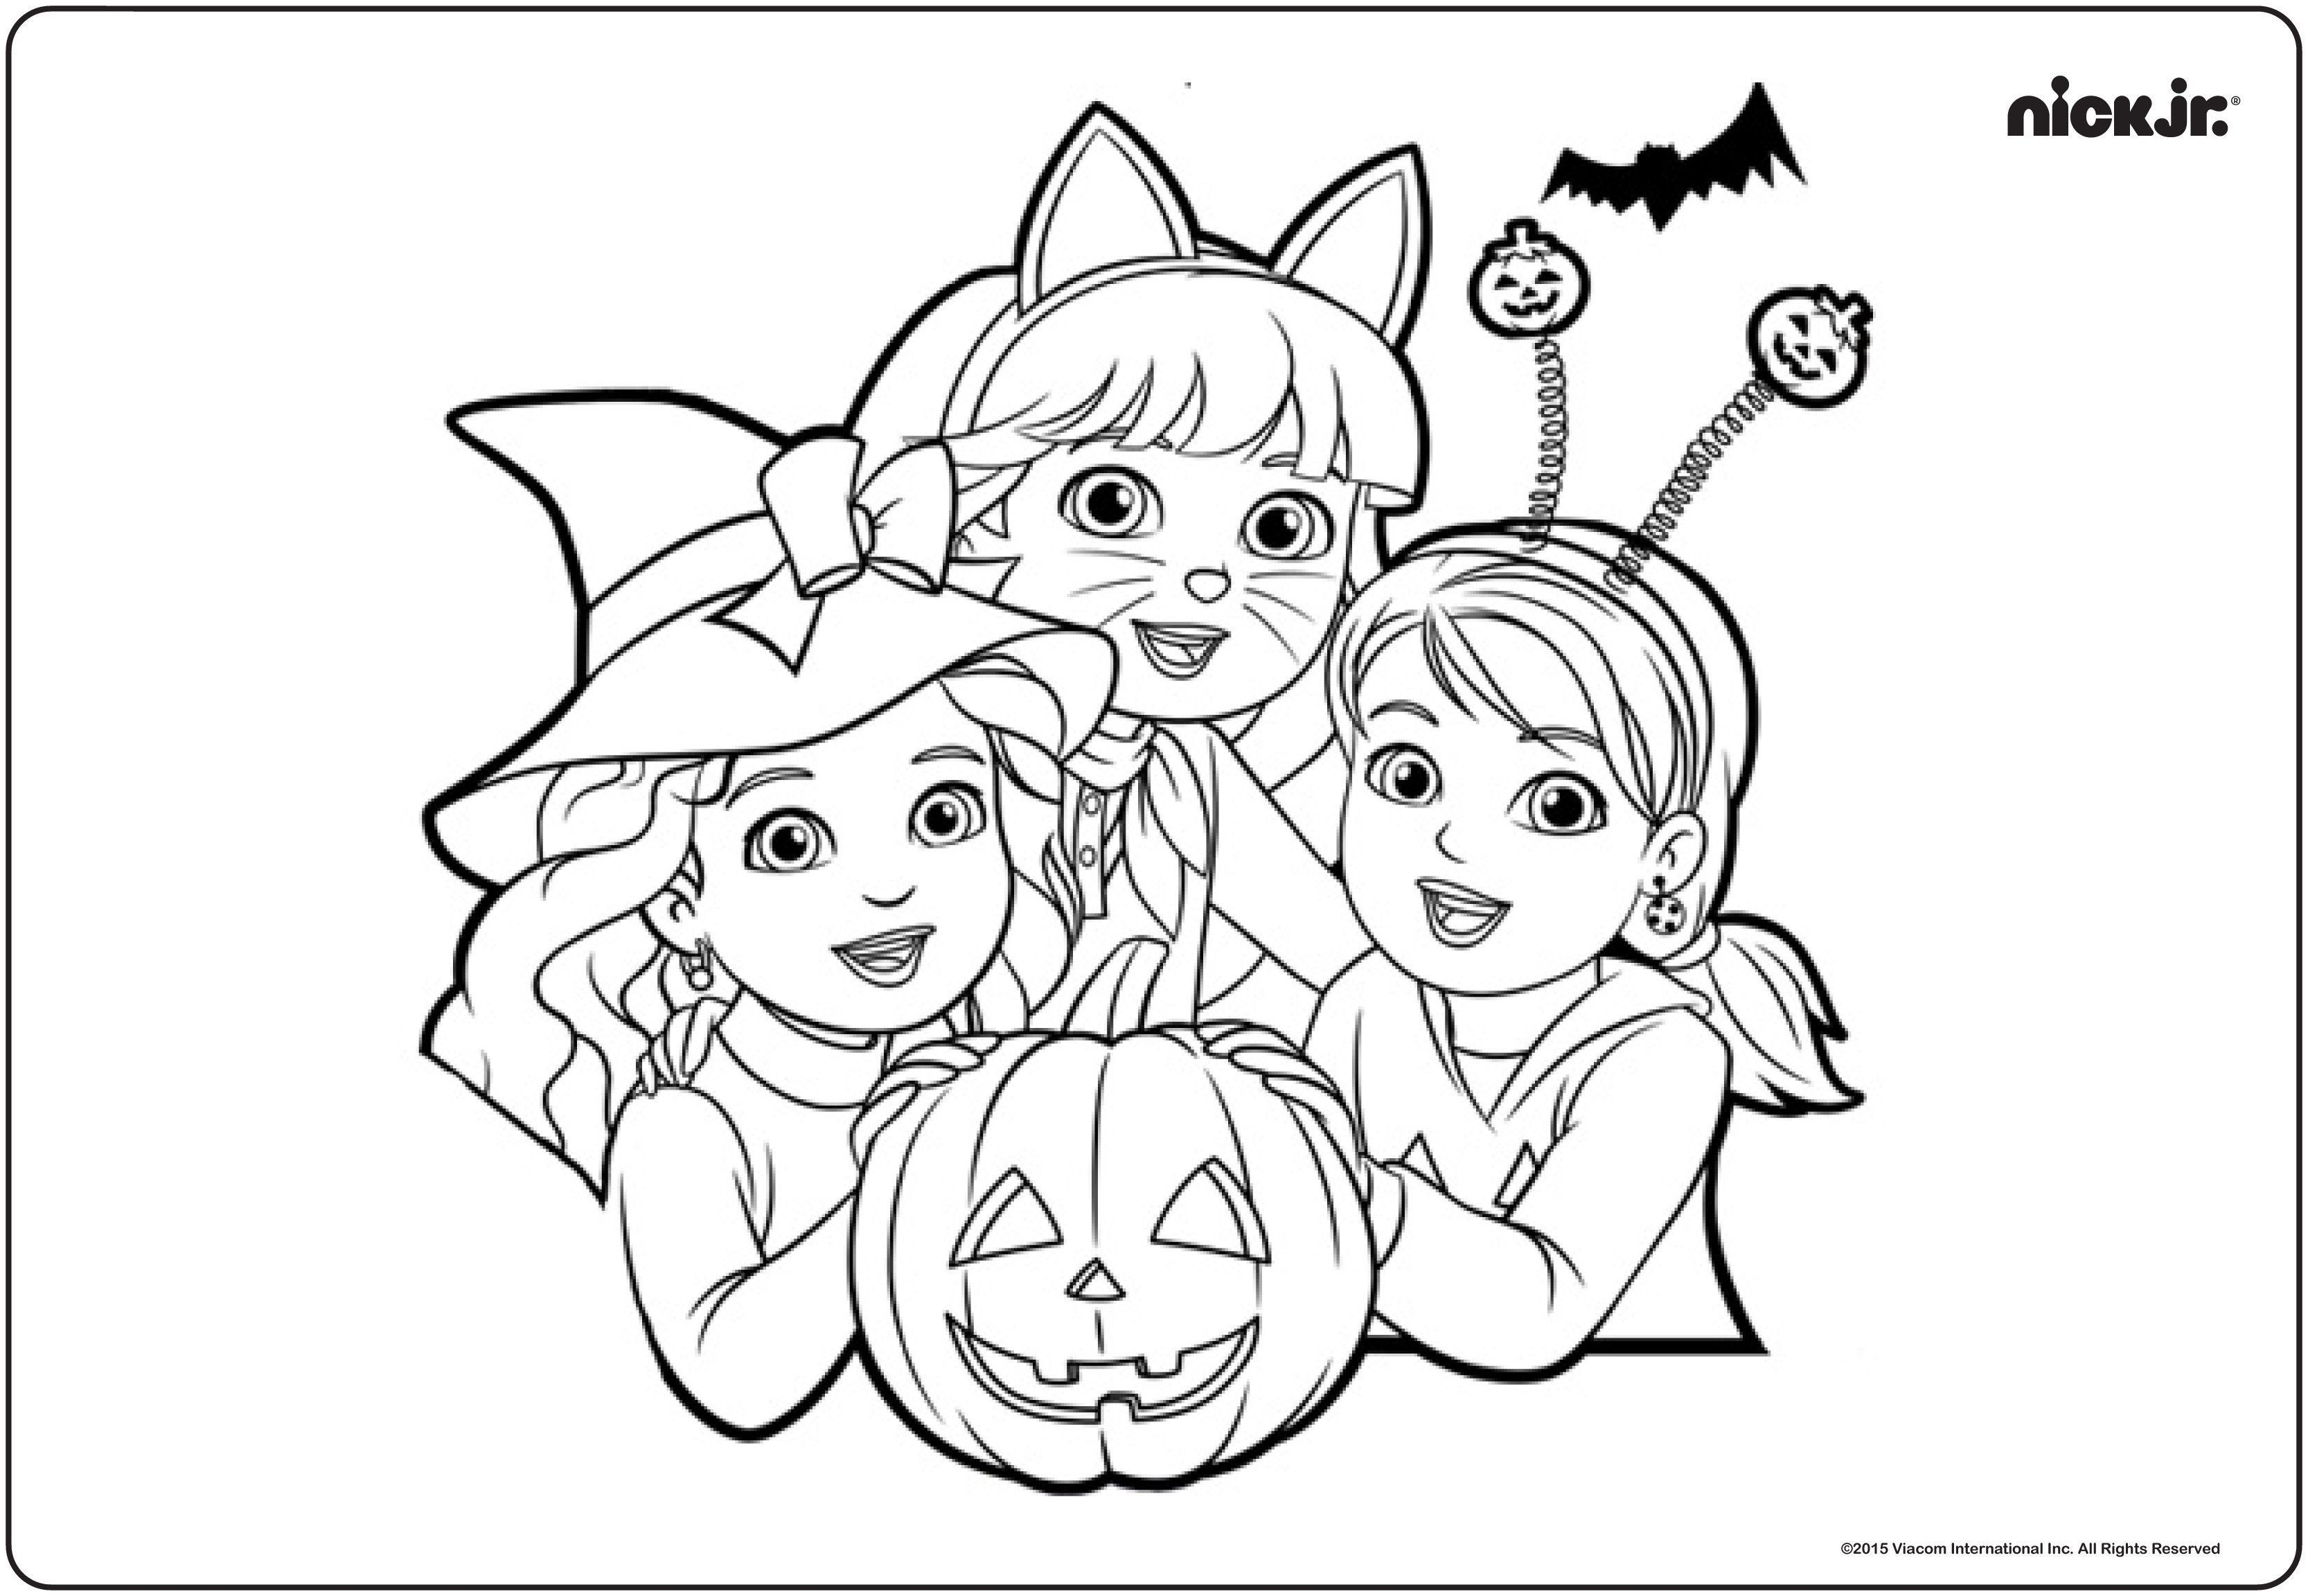 nick jr coloring pages unique shimmer and shine coloring